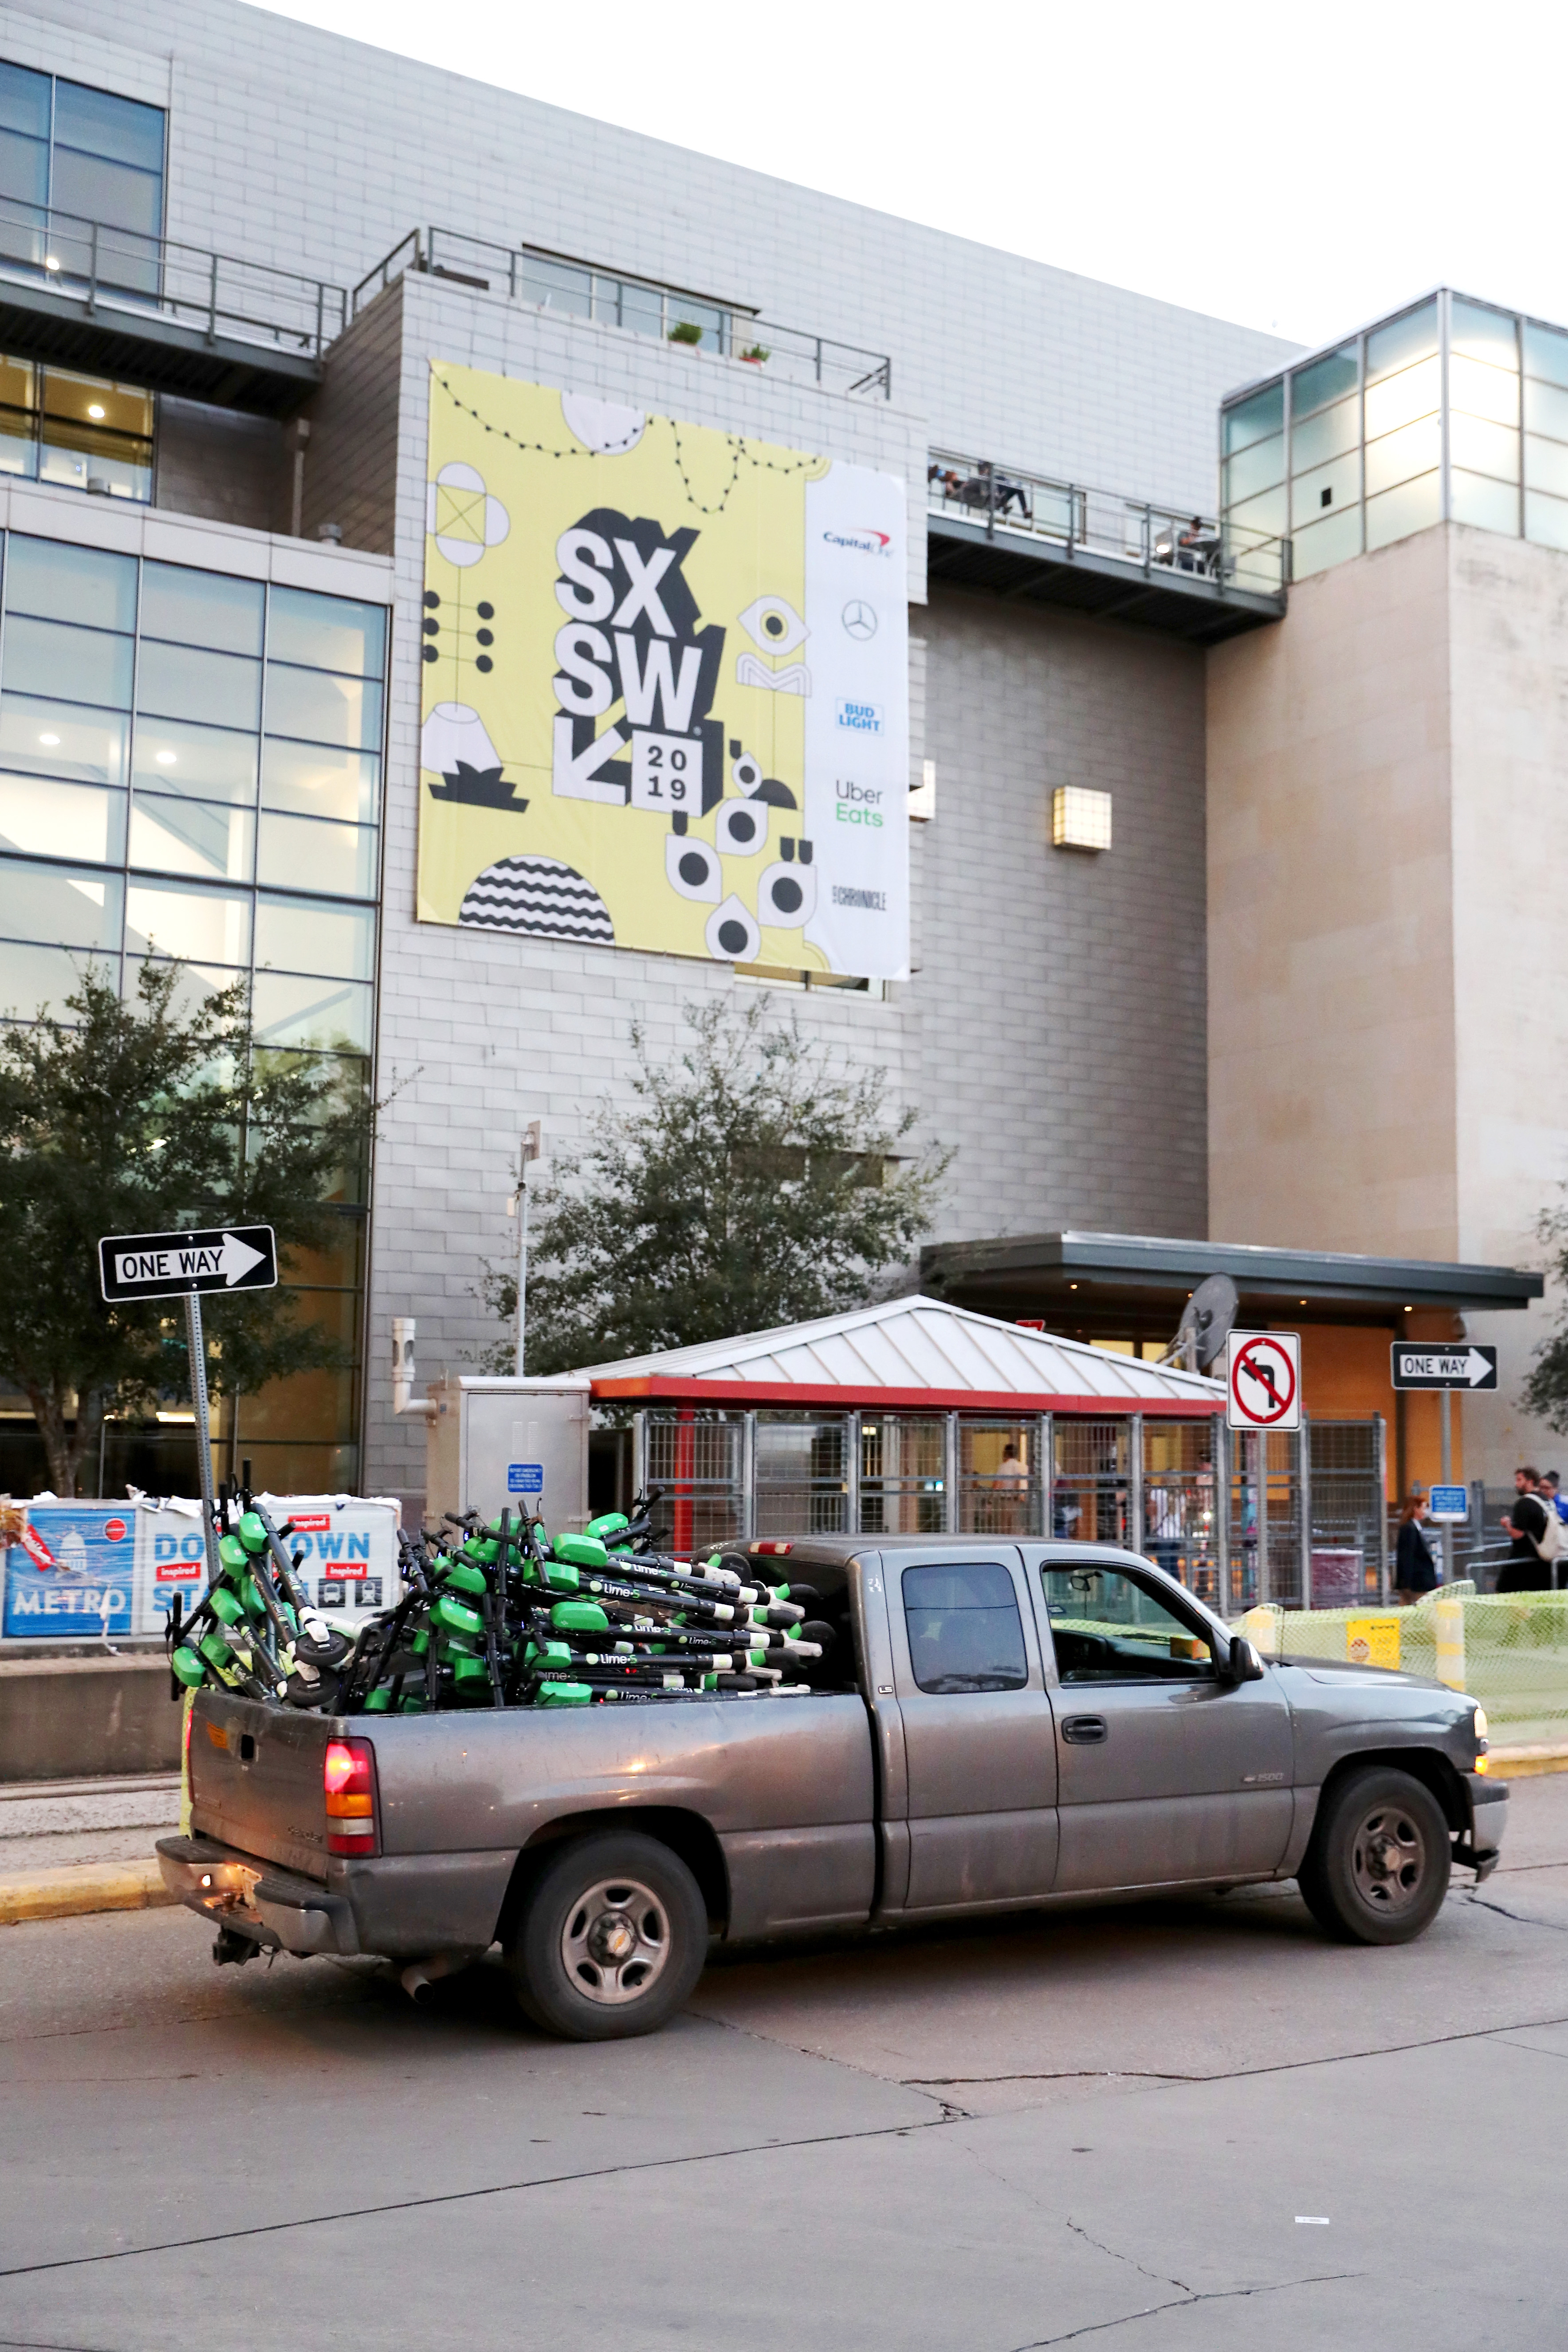 A truck full of e-scooters is parked on an asphalt street  in front of a small, covered commuter rail station. A five-story building with sign that reads SXSW is in the background. One-way street signs are on the sidewalk.